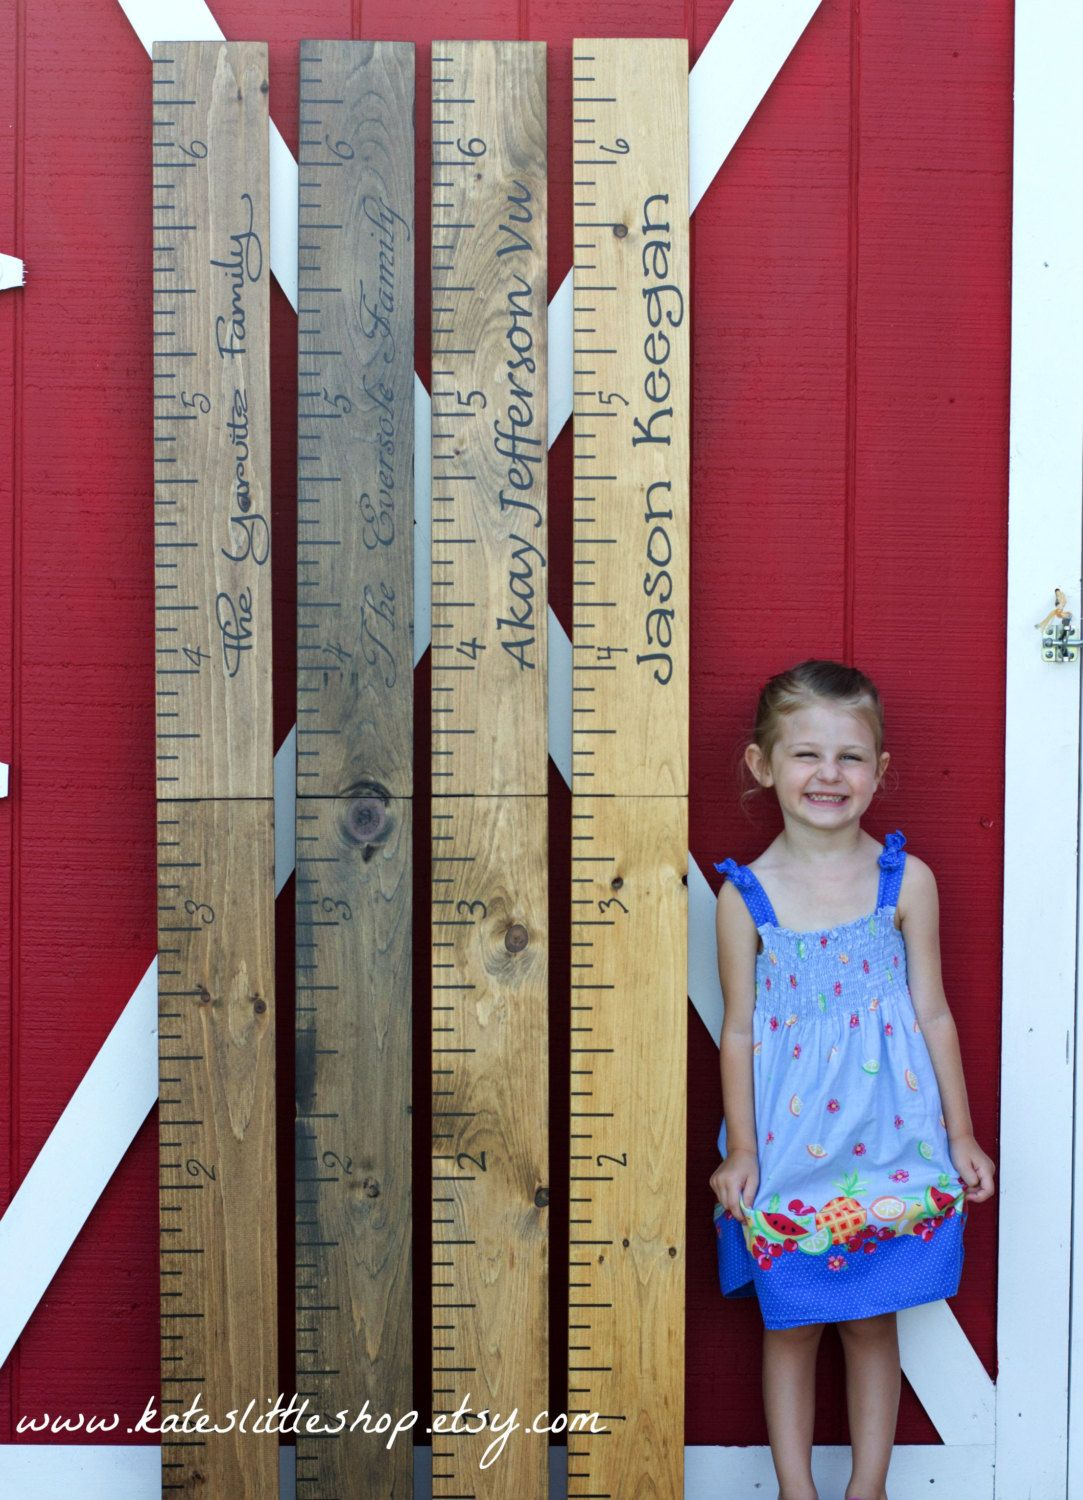 Giant ruler hand painted family growth chart childrens growth family growth chart childrens growth chart childrens measuring geenschuldenfo Gallery